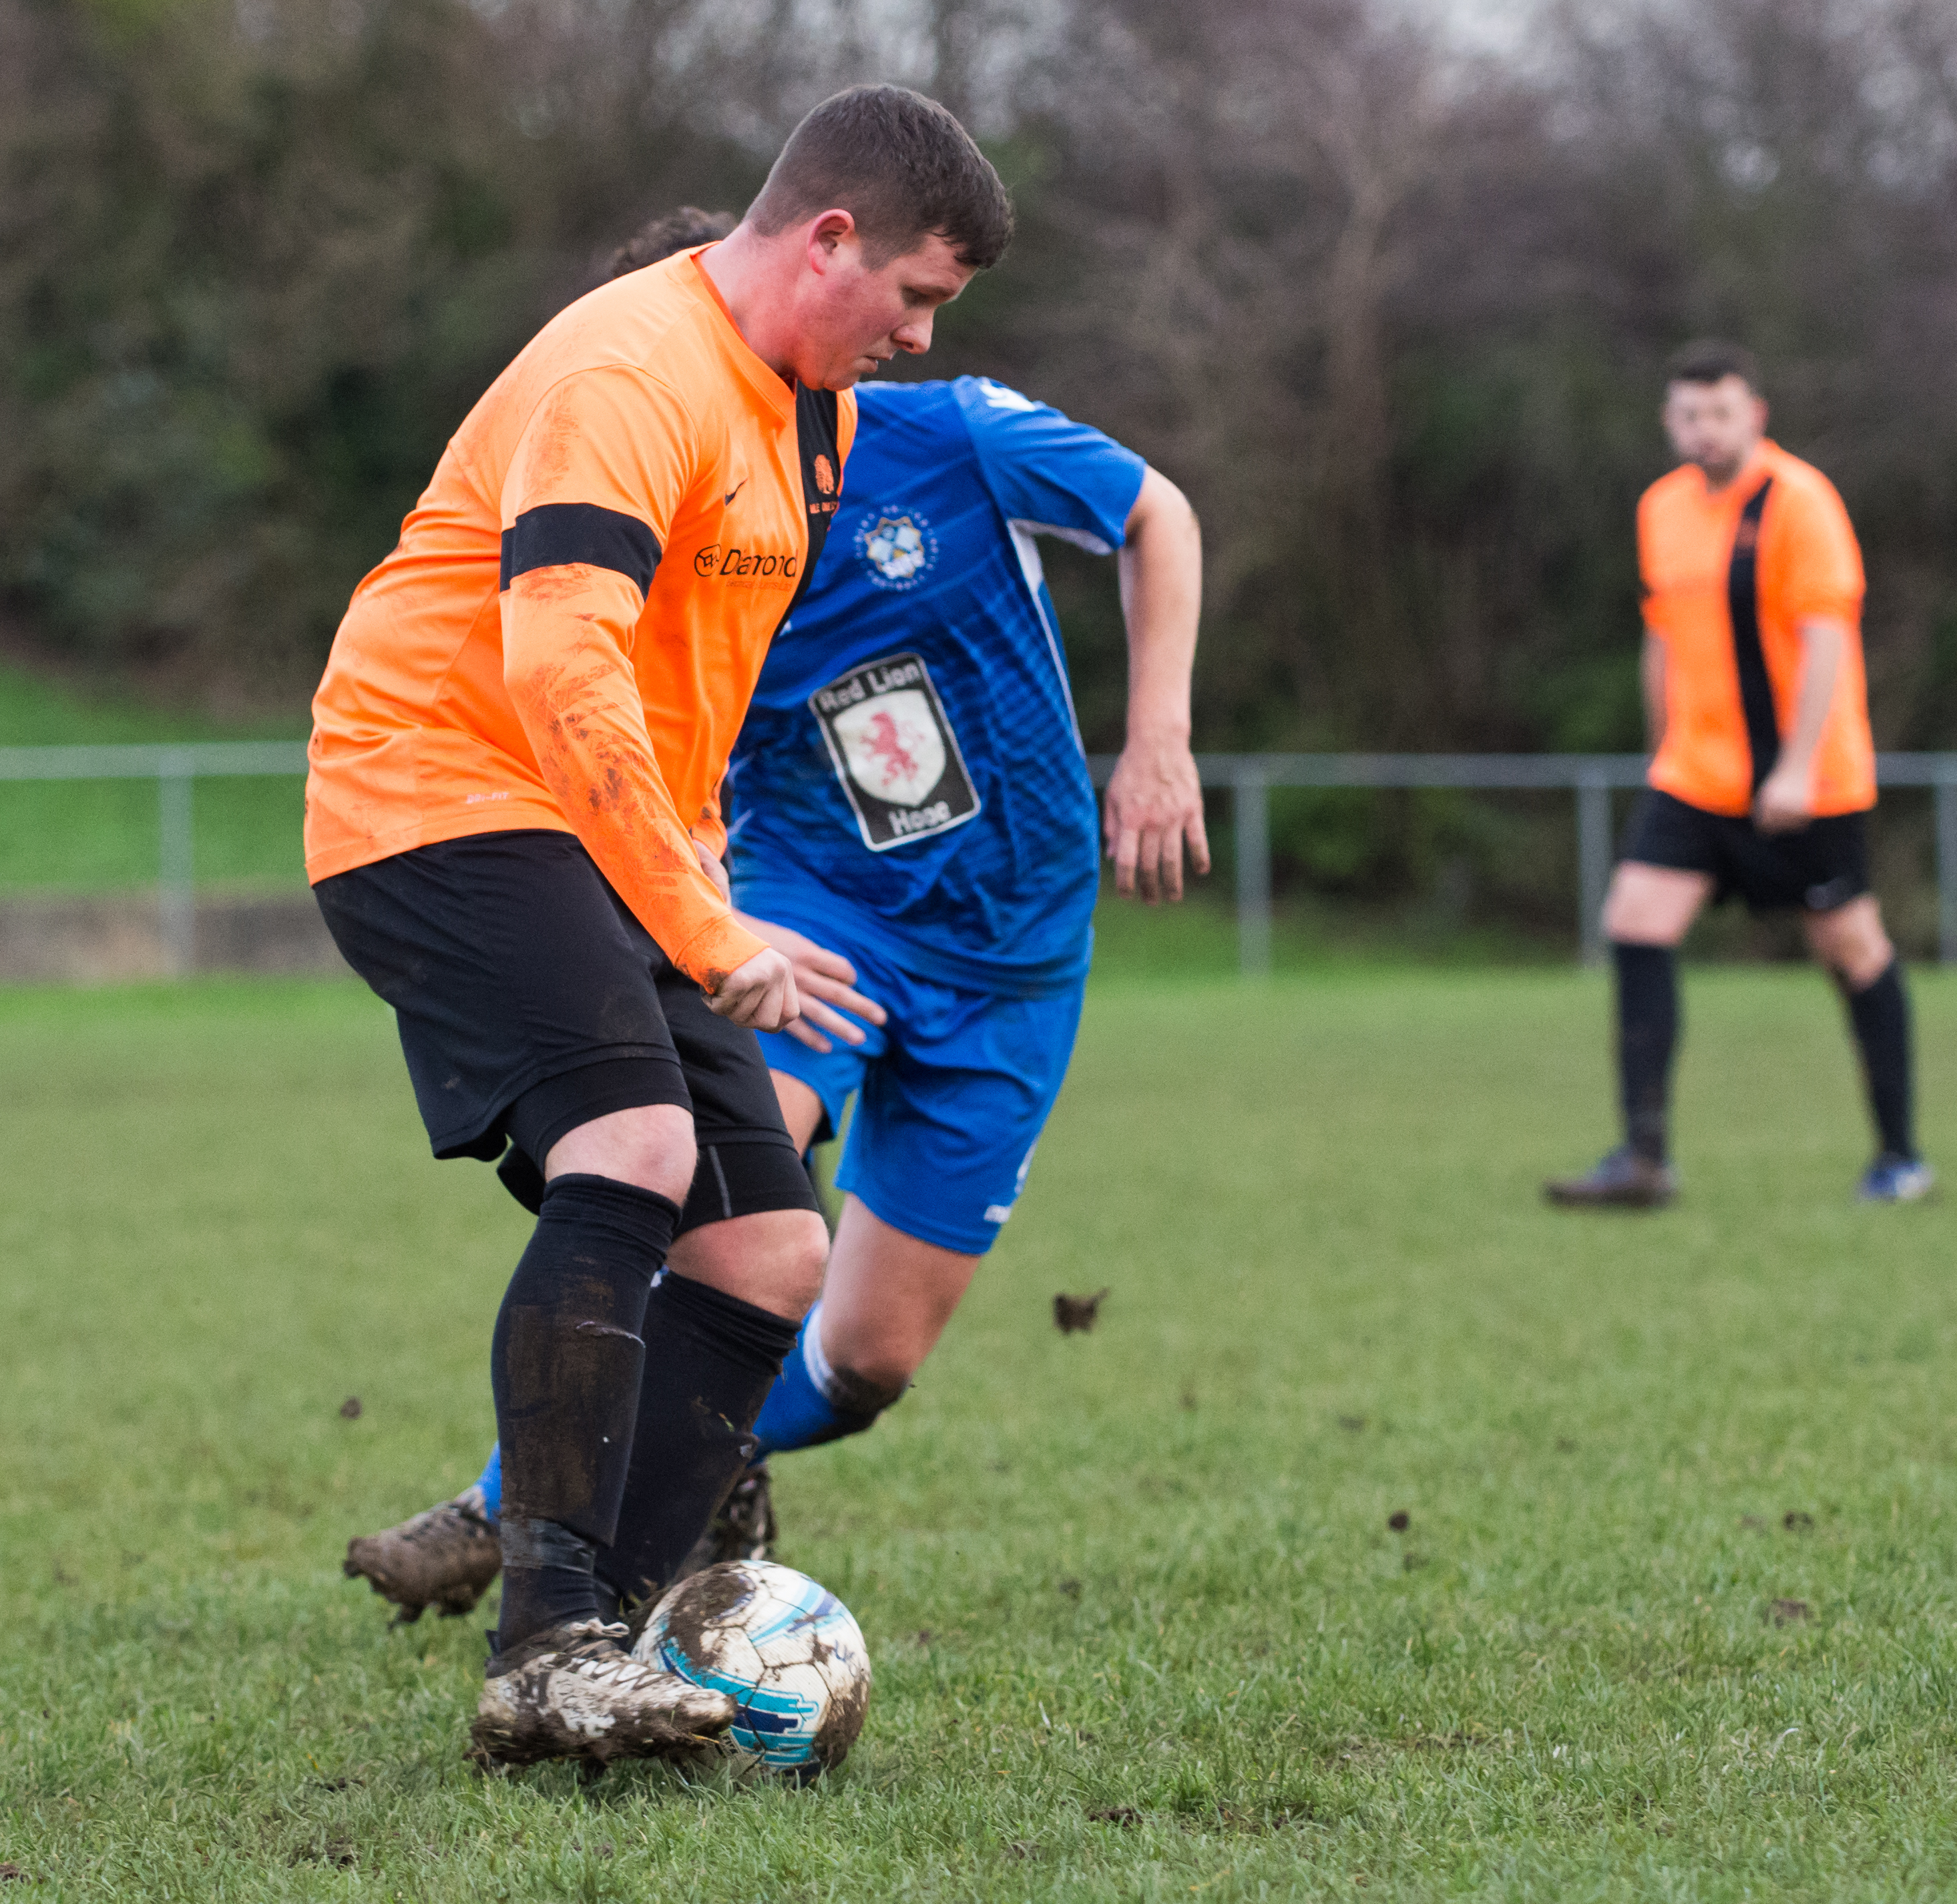 Mile Oak Res vs Sidley United 09.12.17 13